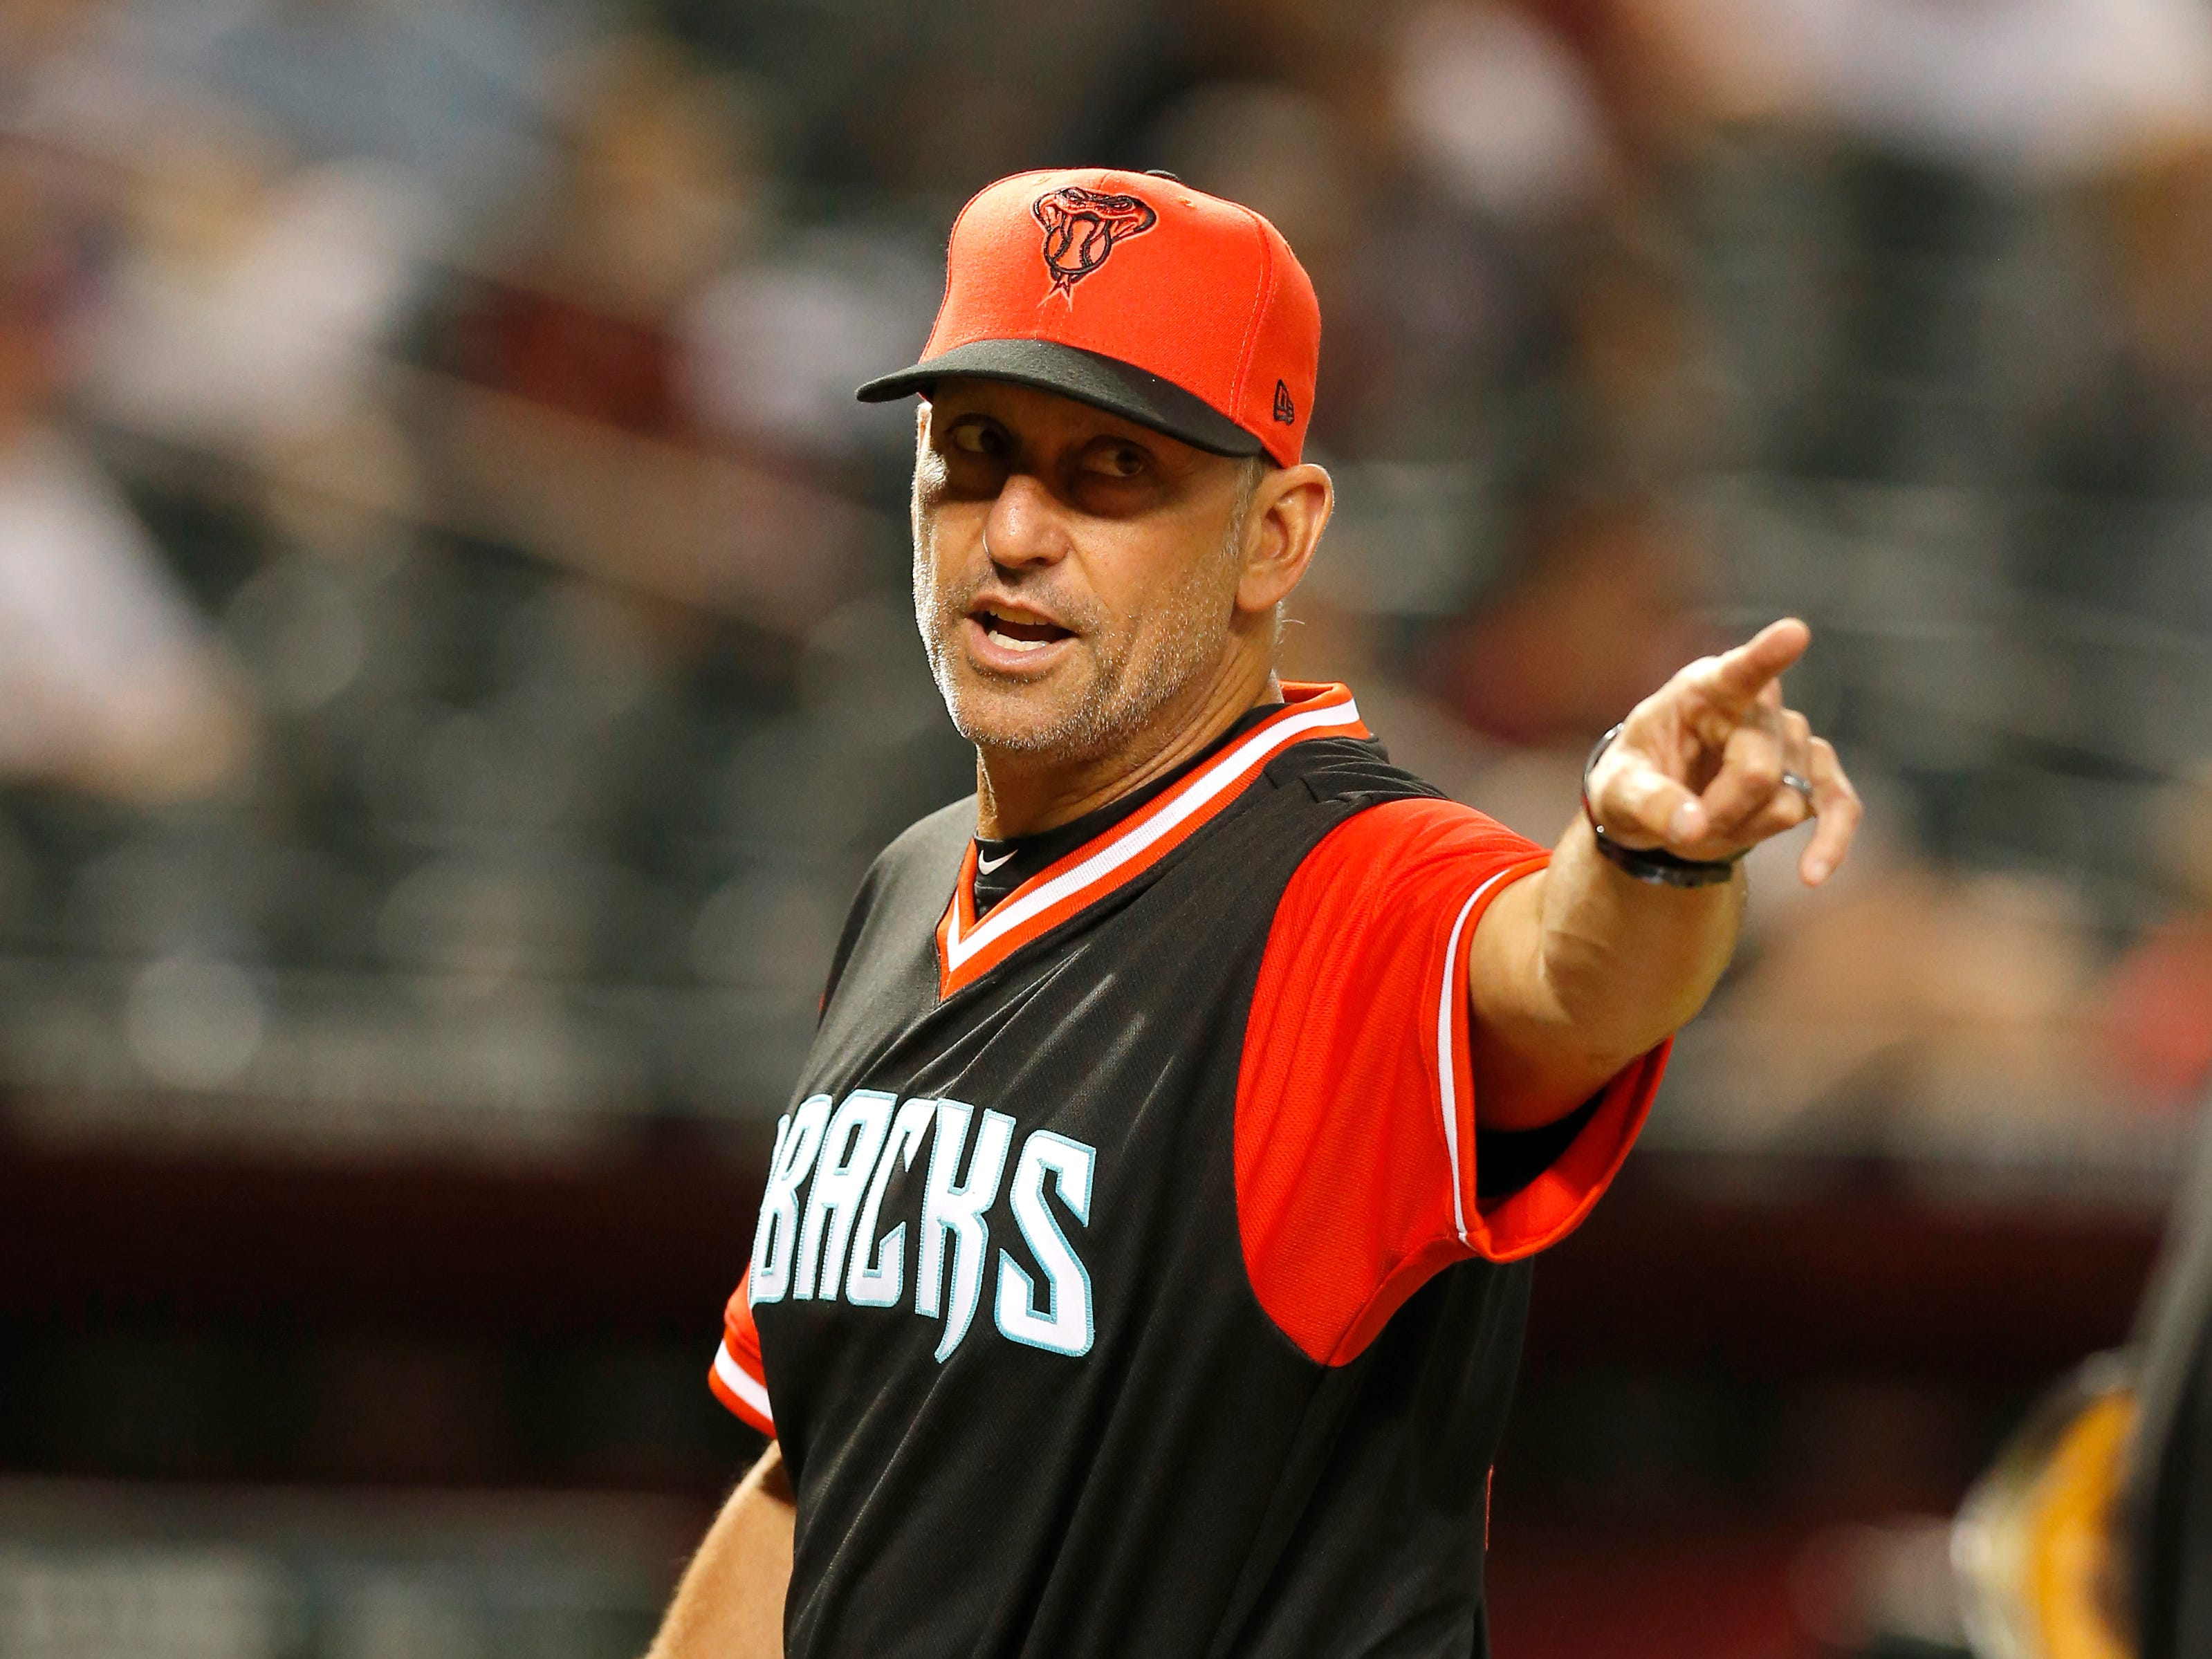 Arizona Diamondbacks manager Torey Lovullo (17) in the first inning during a baseball game against the Seattle Mariners, Friday, Aug. 24, 2018, in Phoenix.